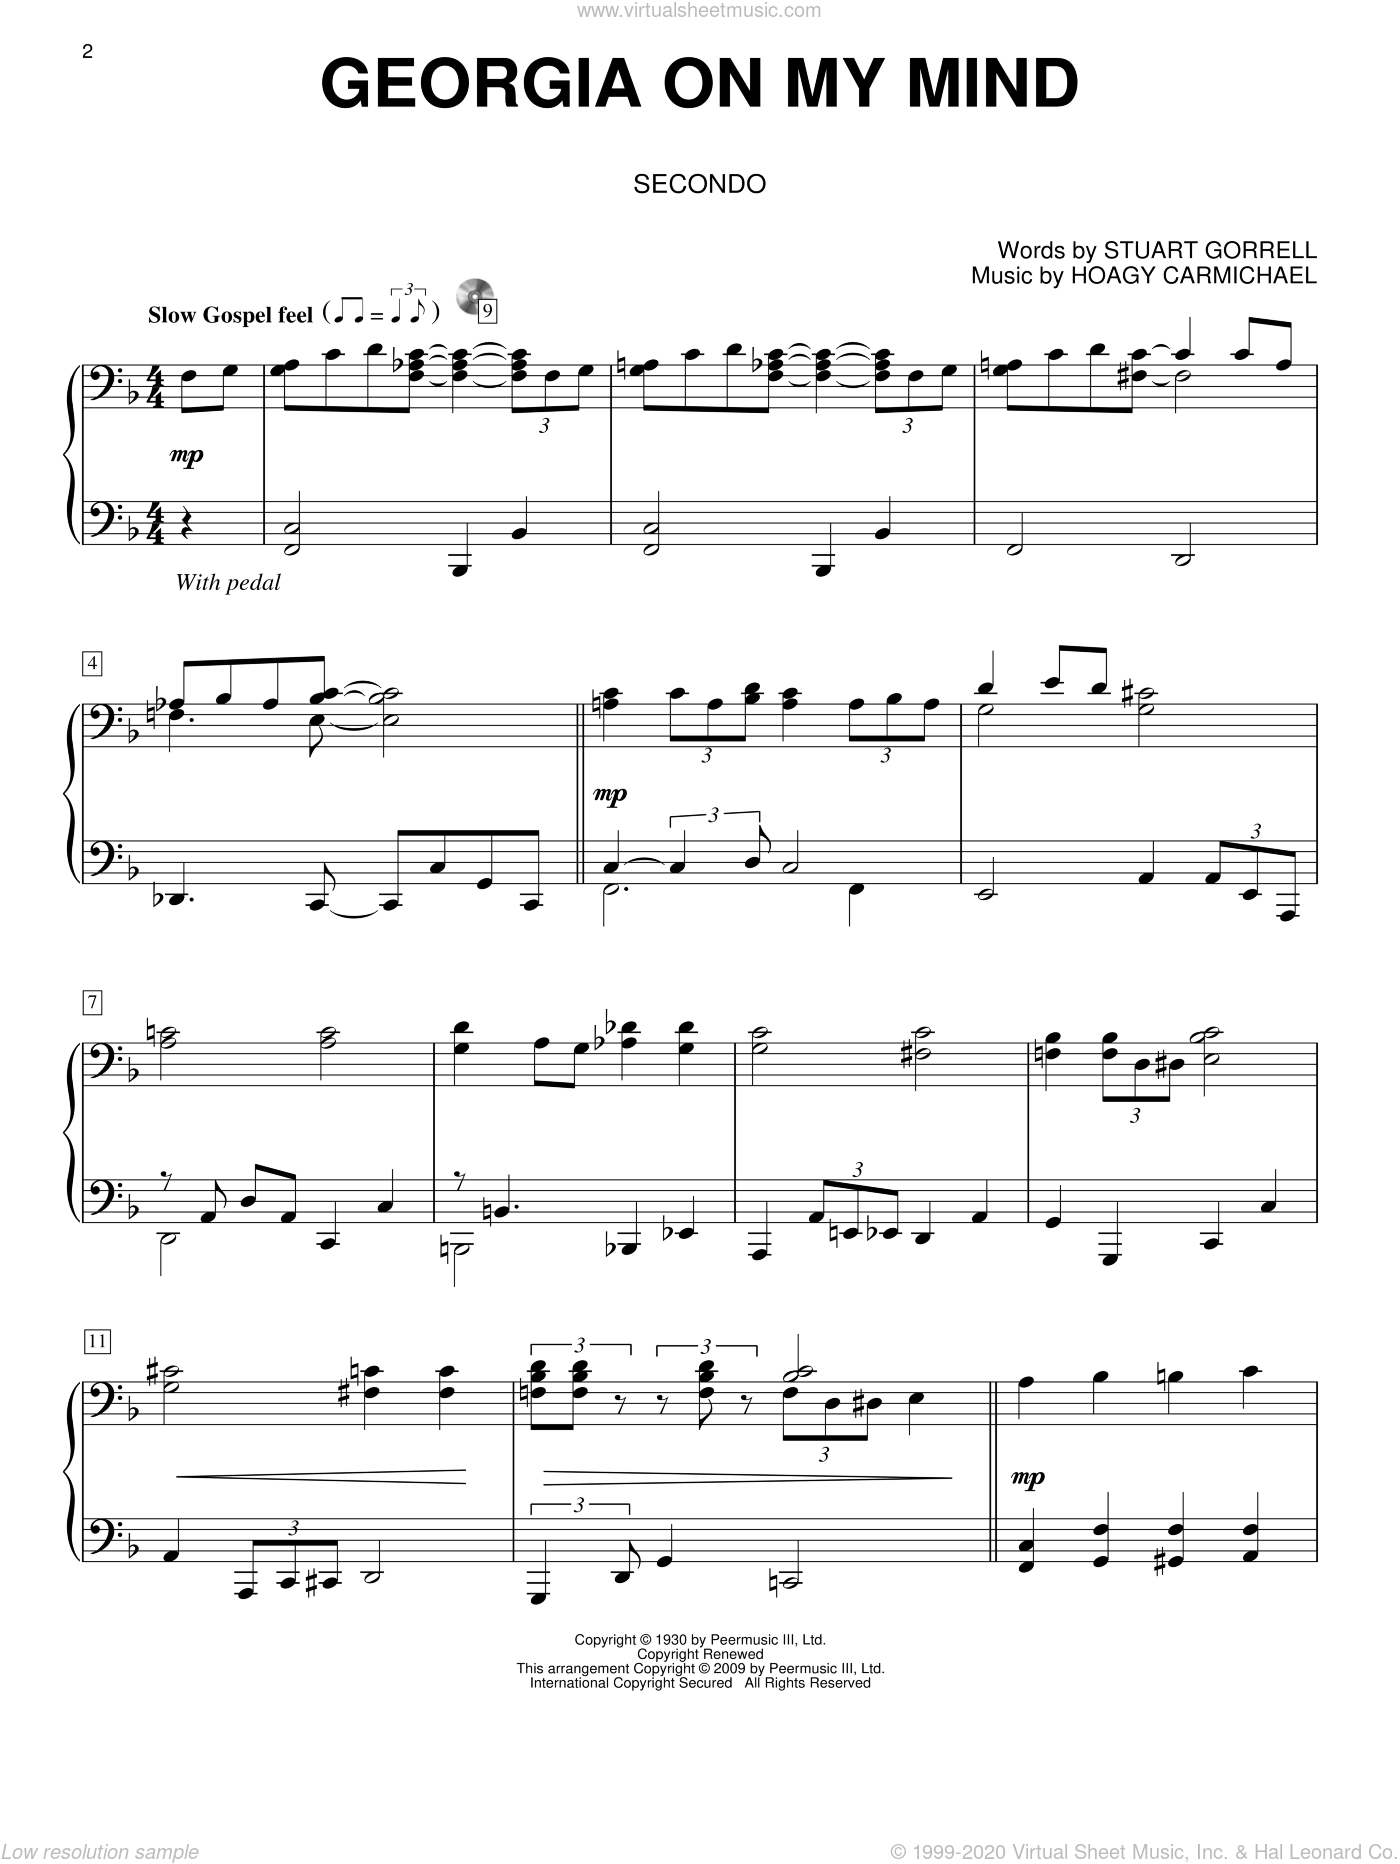 Georgia On My Mind sheet music for piano four hands by Ray Charles, Willie Nelson, Hoagy Carmichael and Stuart Gorrell, intermediate skill level